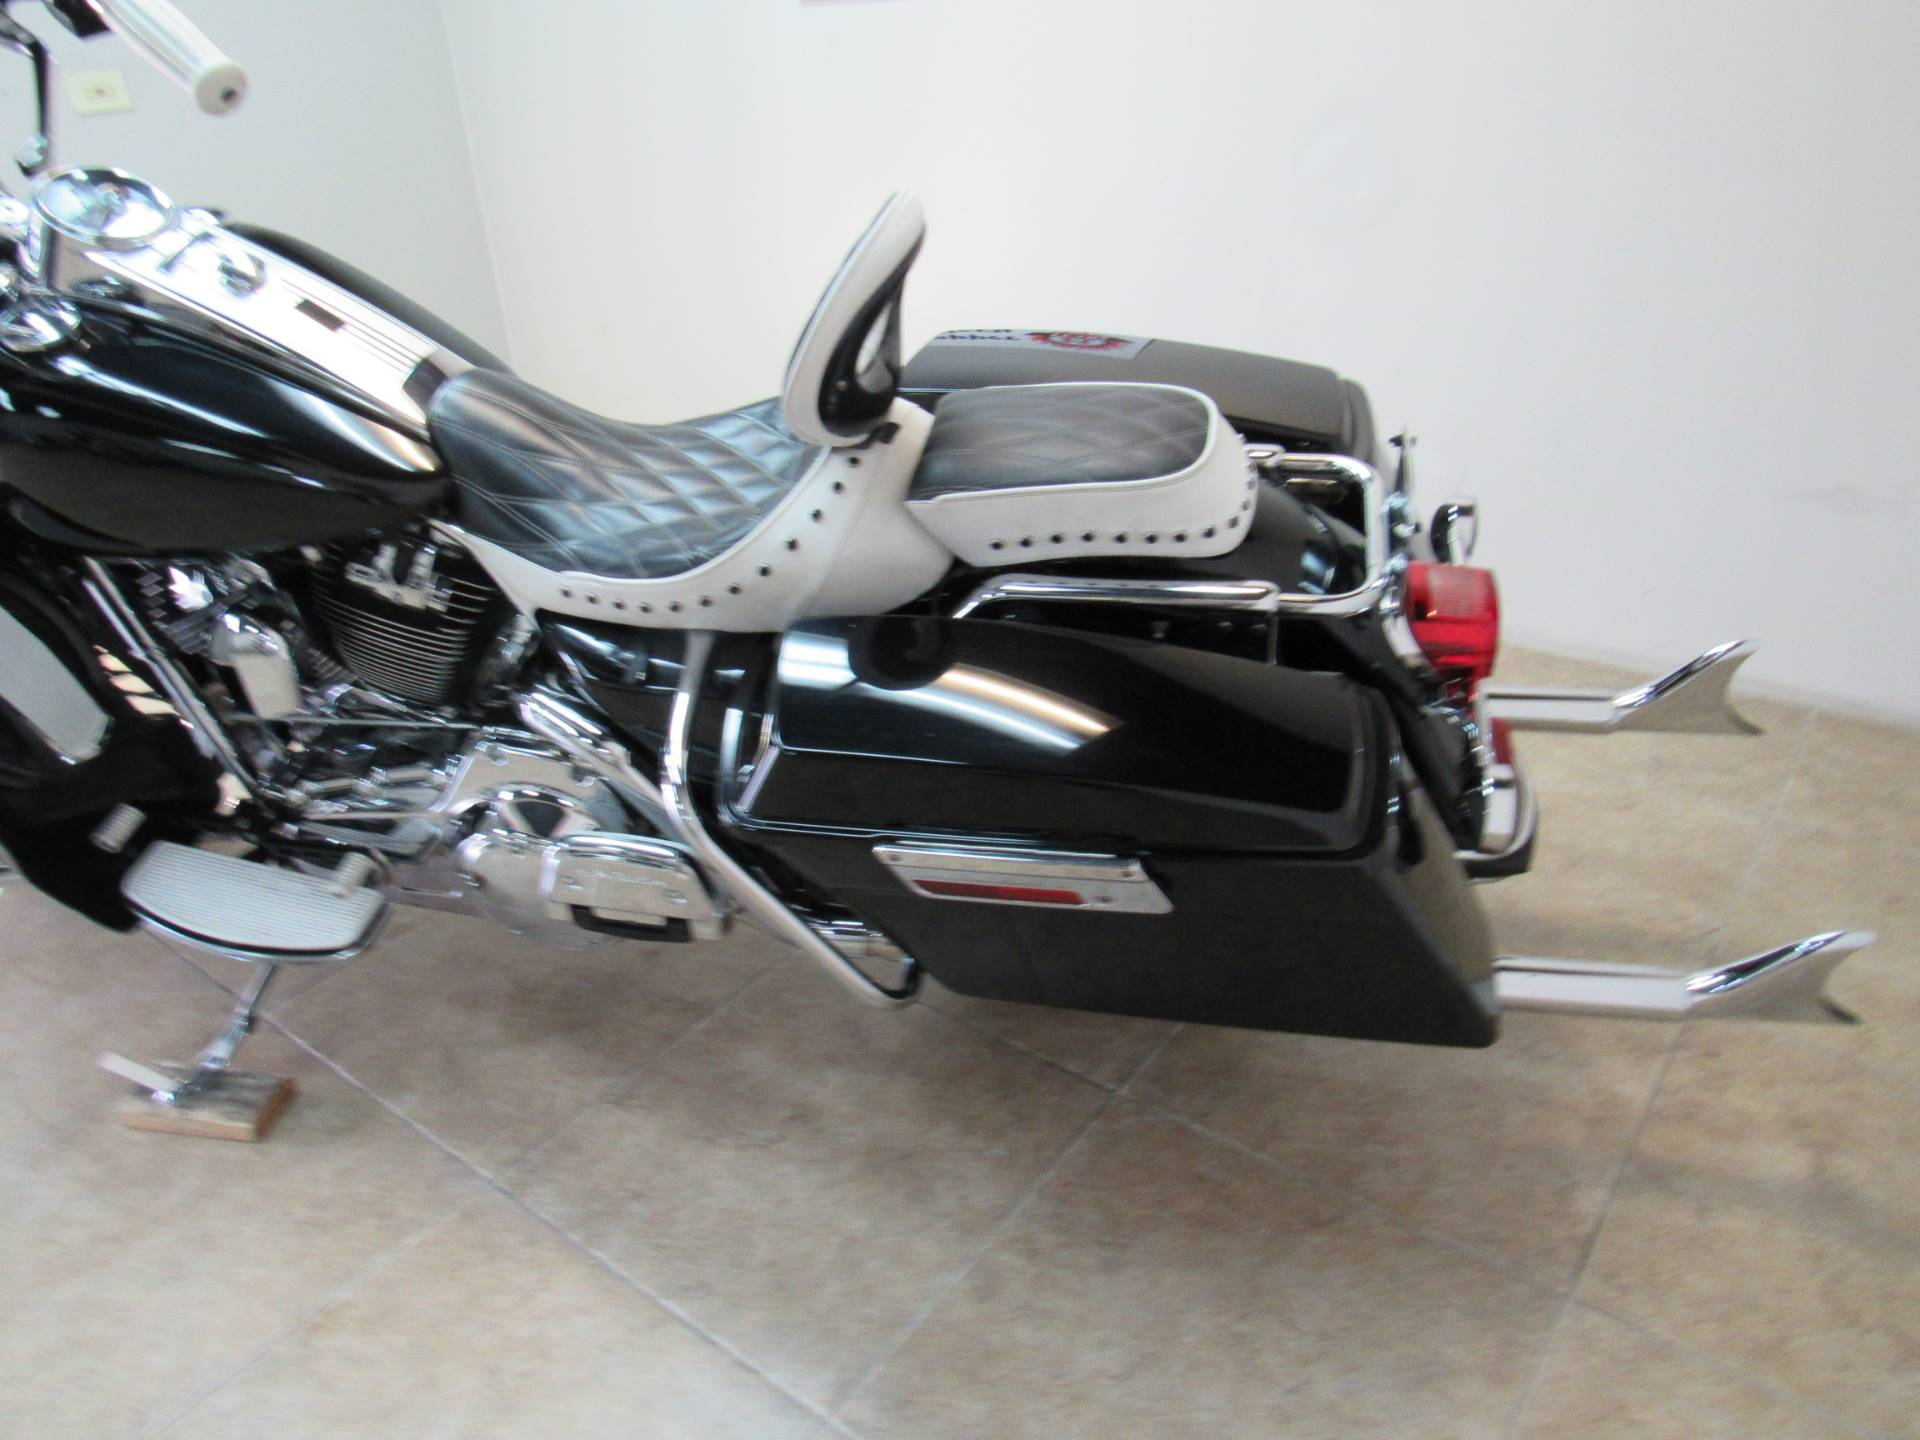 2008 Harley-Davidson Road King® in Temecula, California - Photo 35